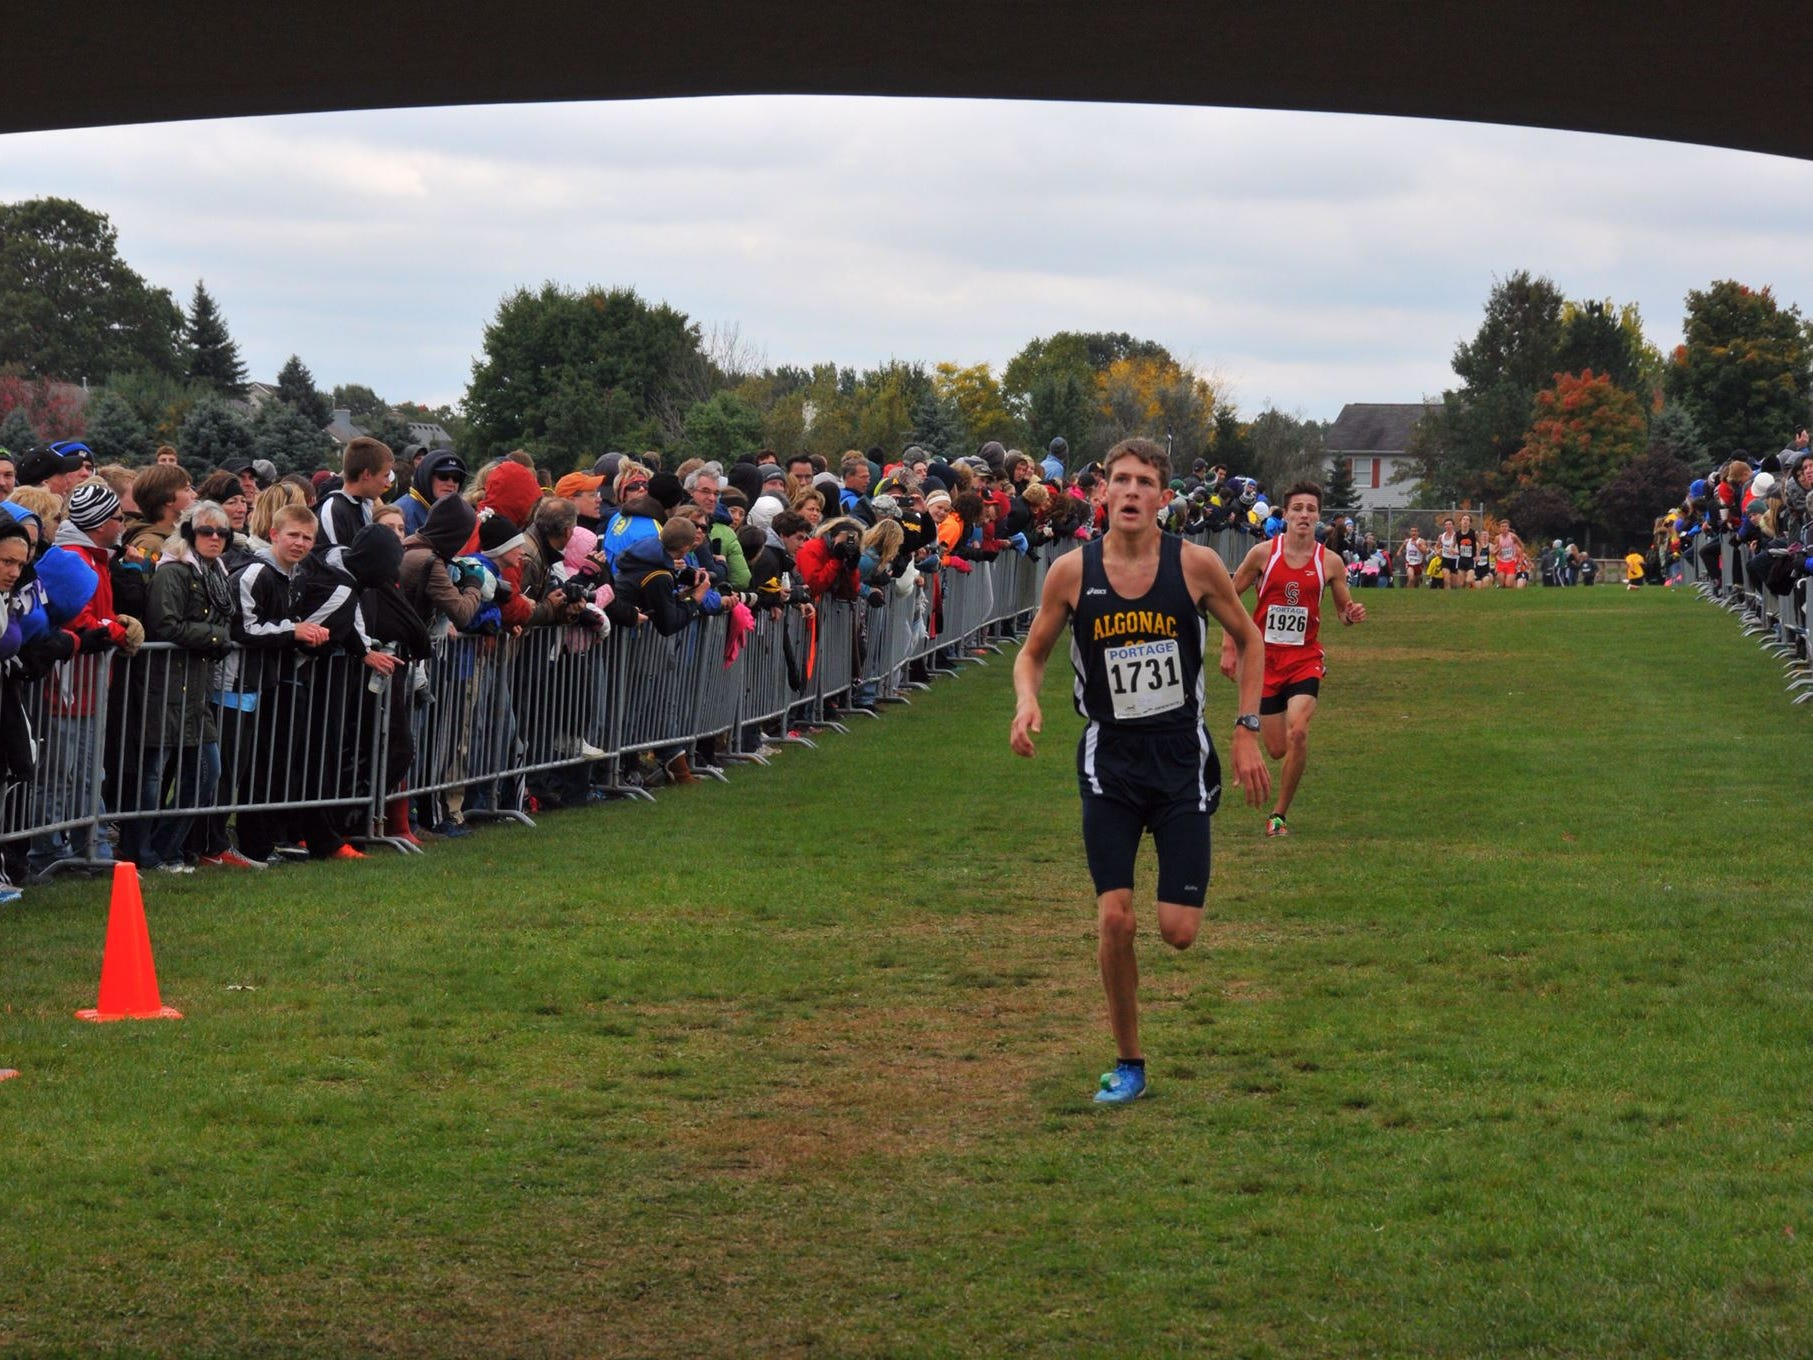 Algonac's Morgan Beadlescomb finishes in second in the division two boys race at the Portage Invitational.